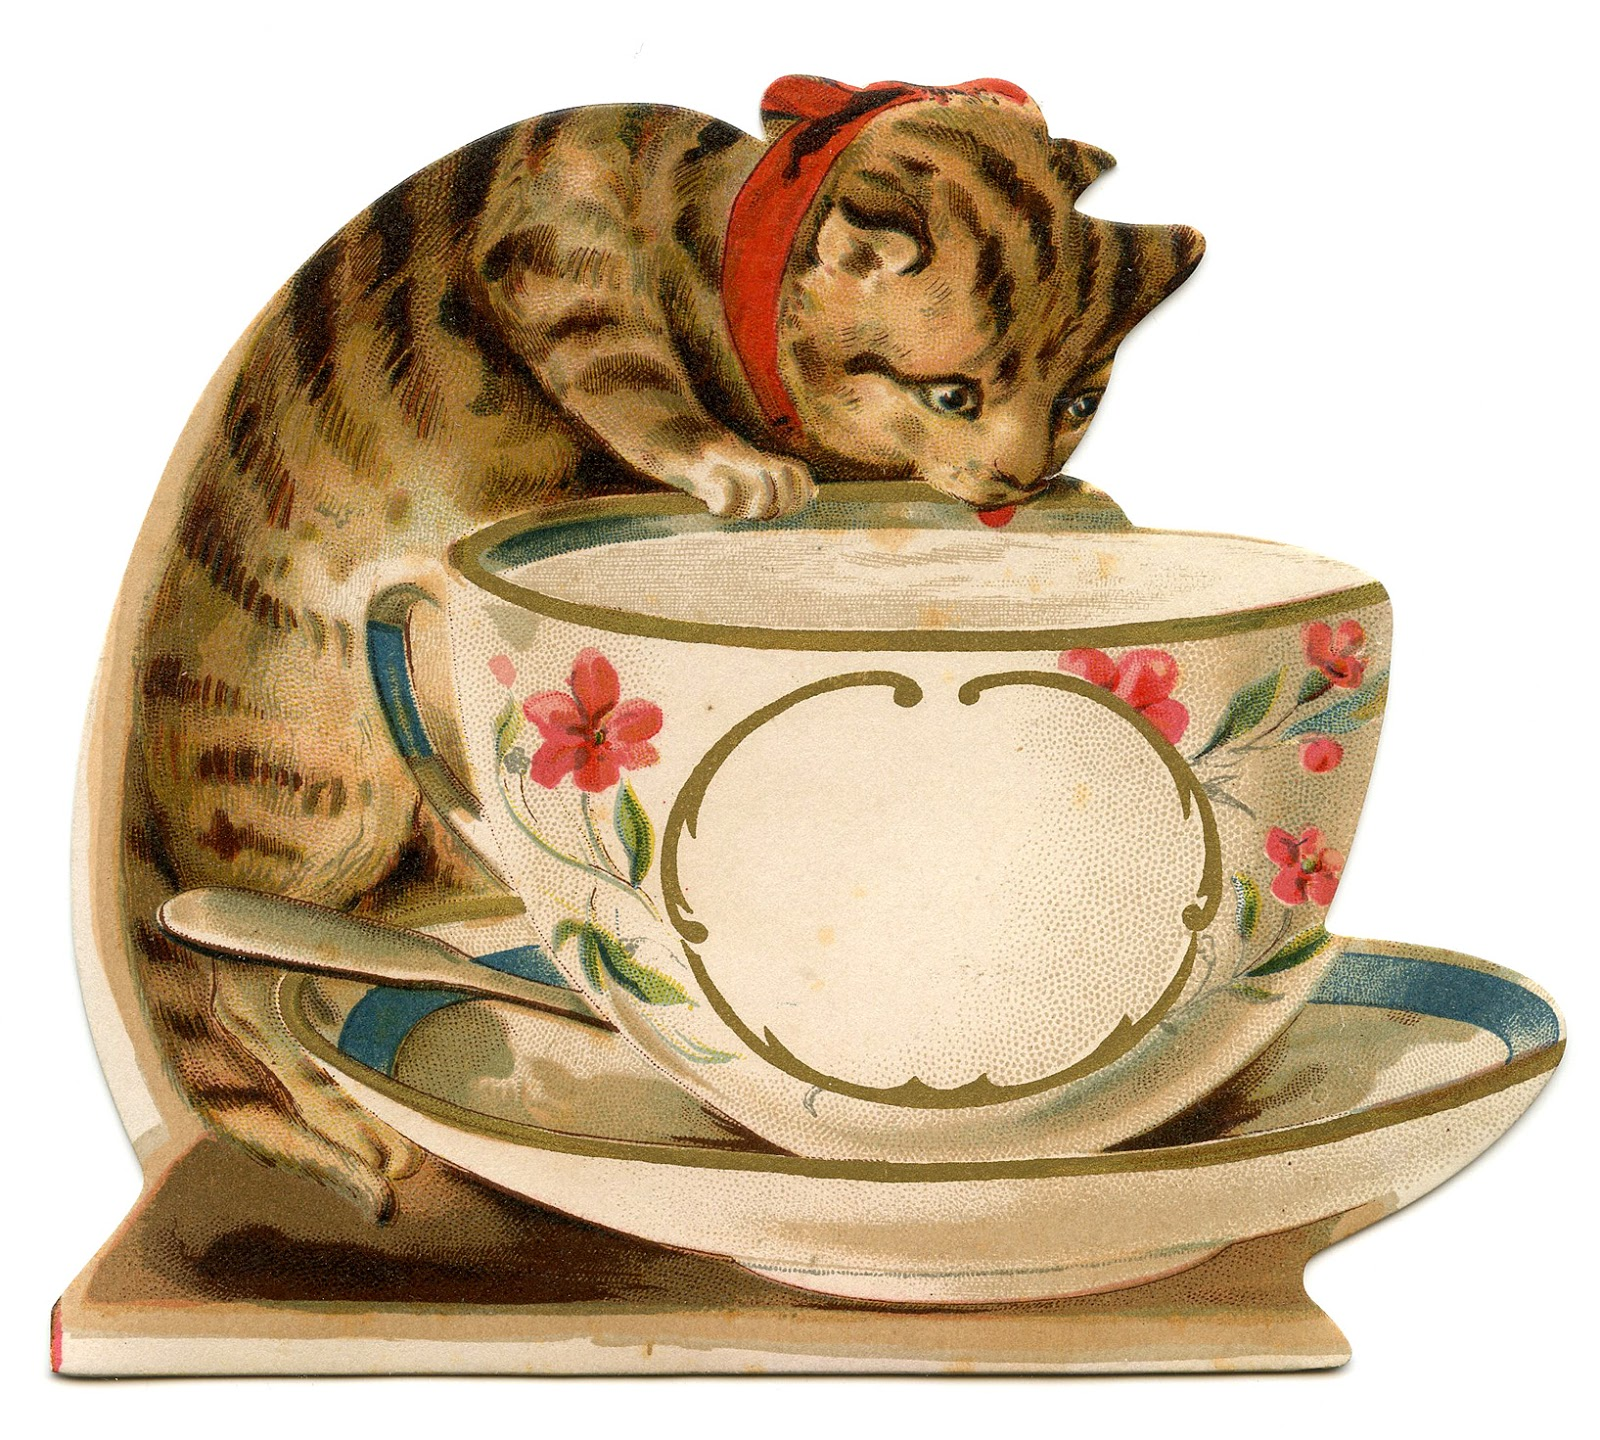 Teacup clipart kitty Vintage Image Tea The with